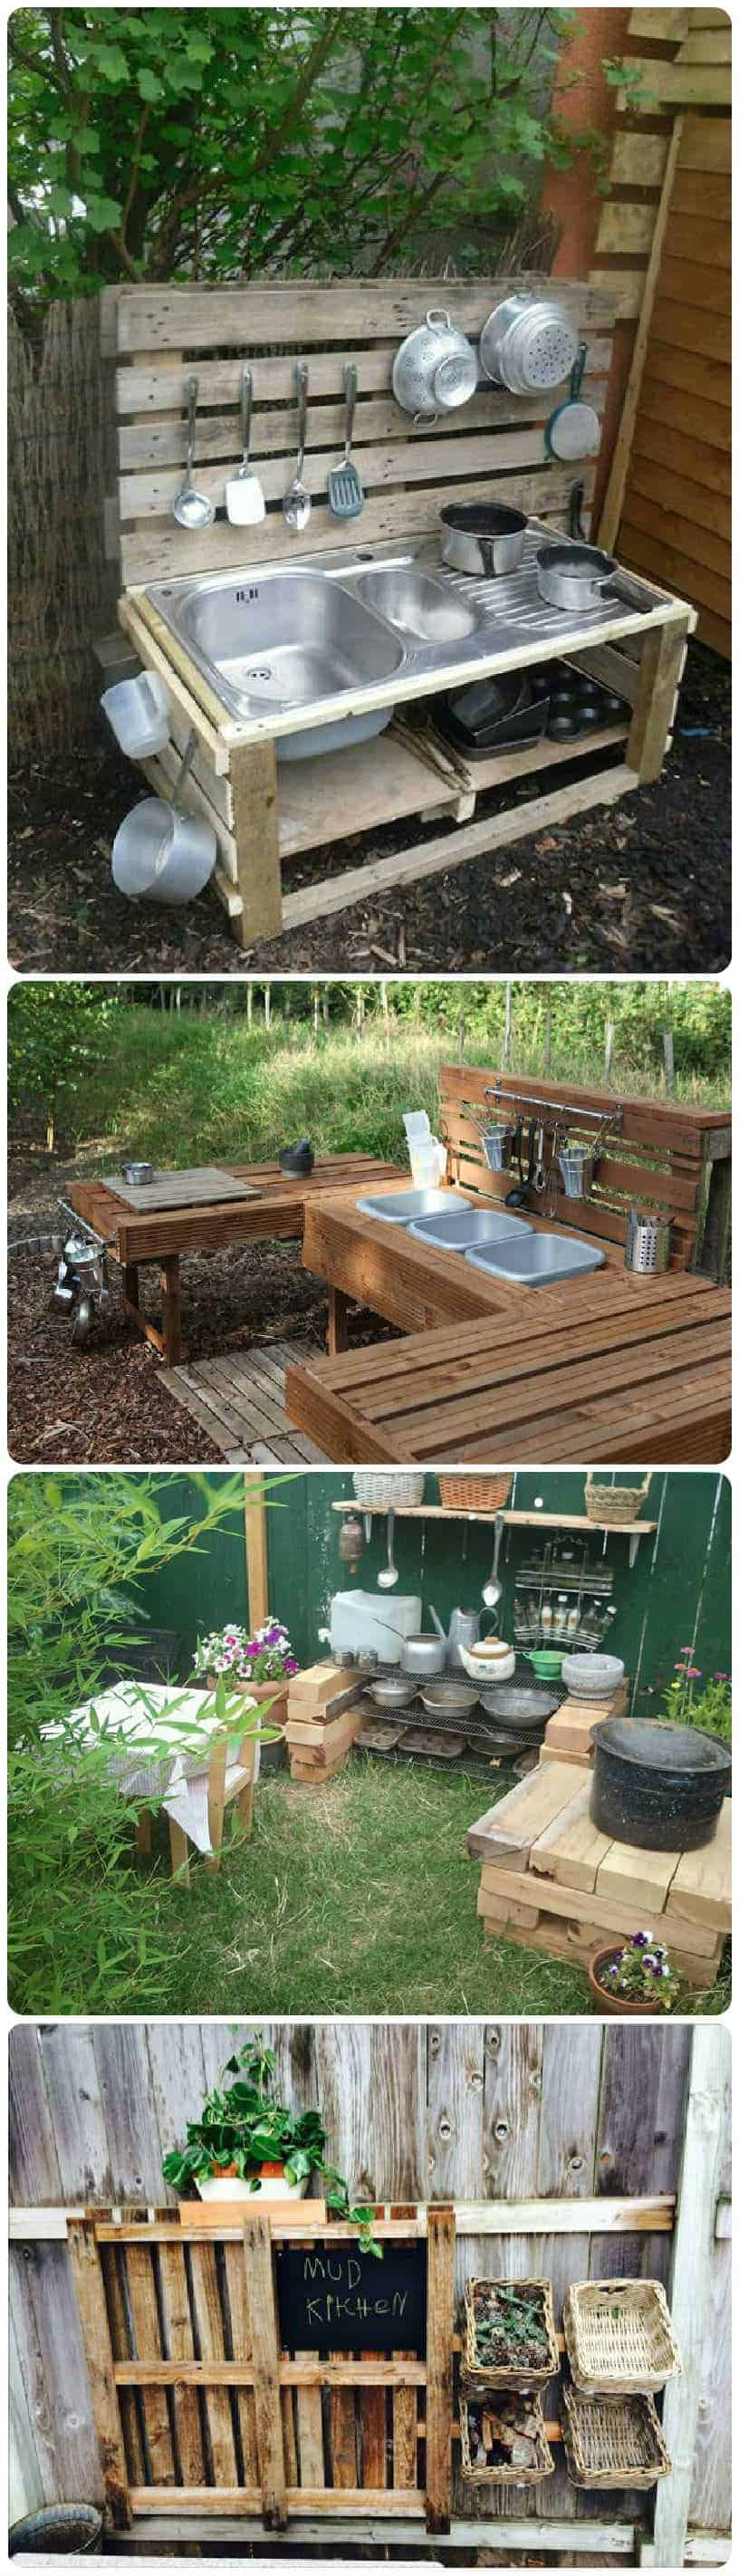 20 Mud Kitchen Ideas For Kids Garden Ideas 1001 Gardens